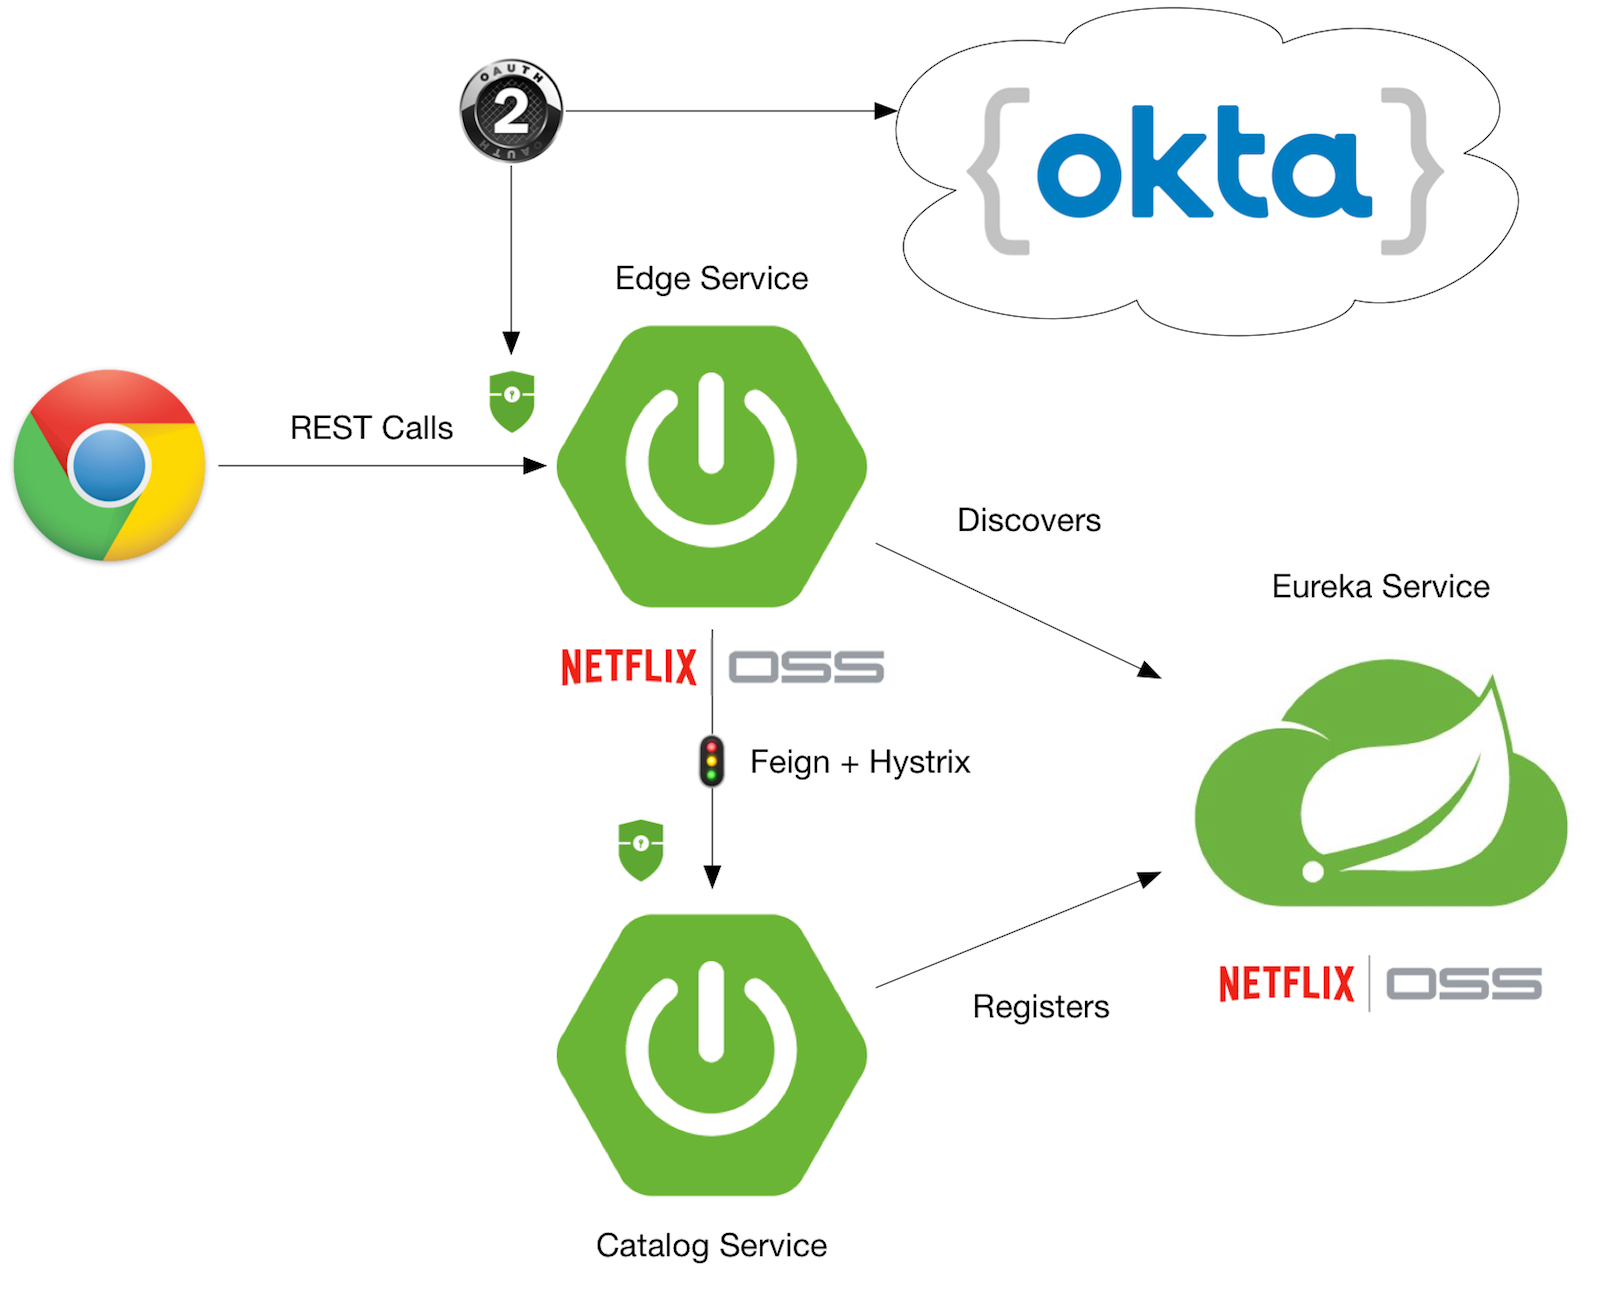 Spring Microservices with OAuth